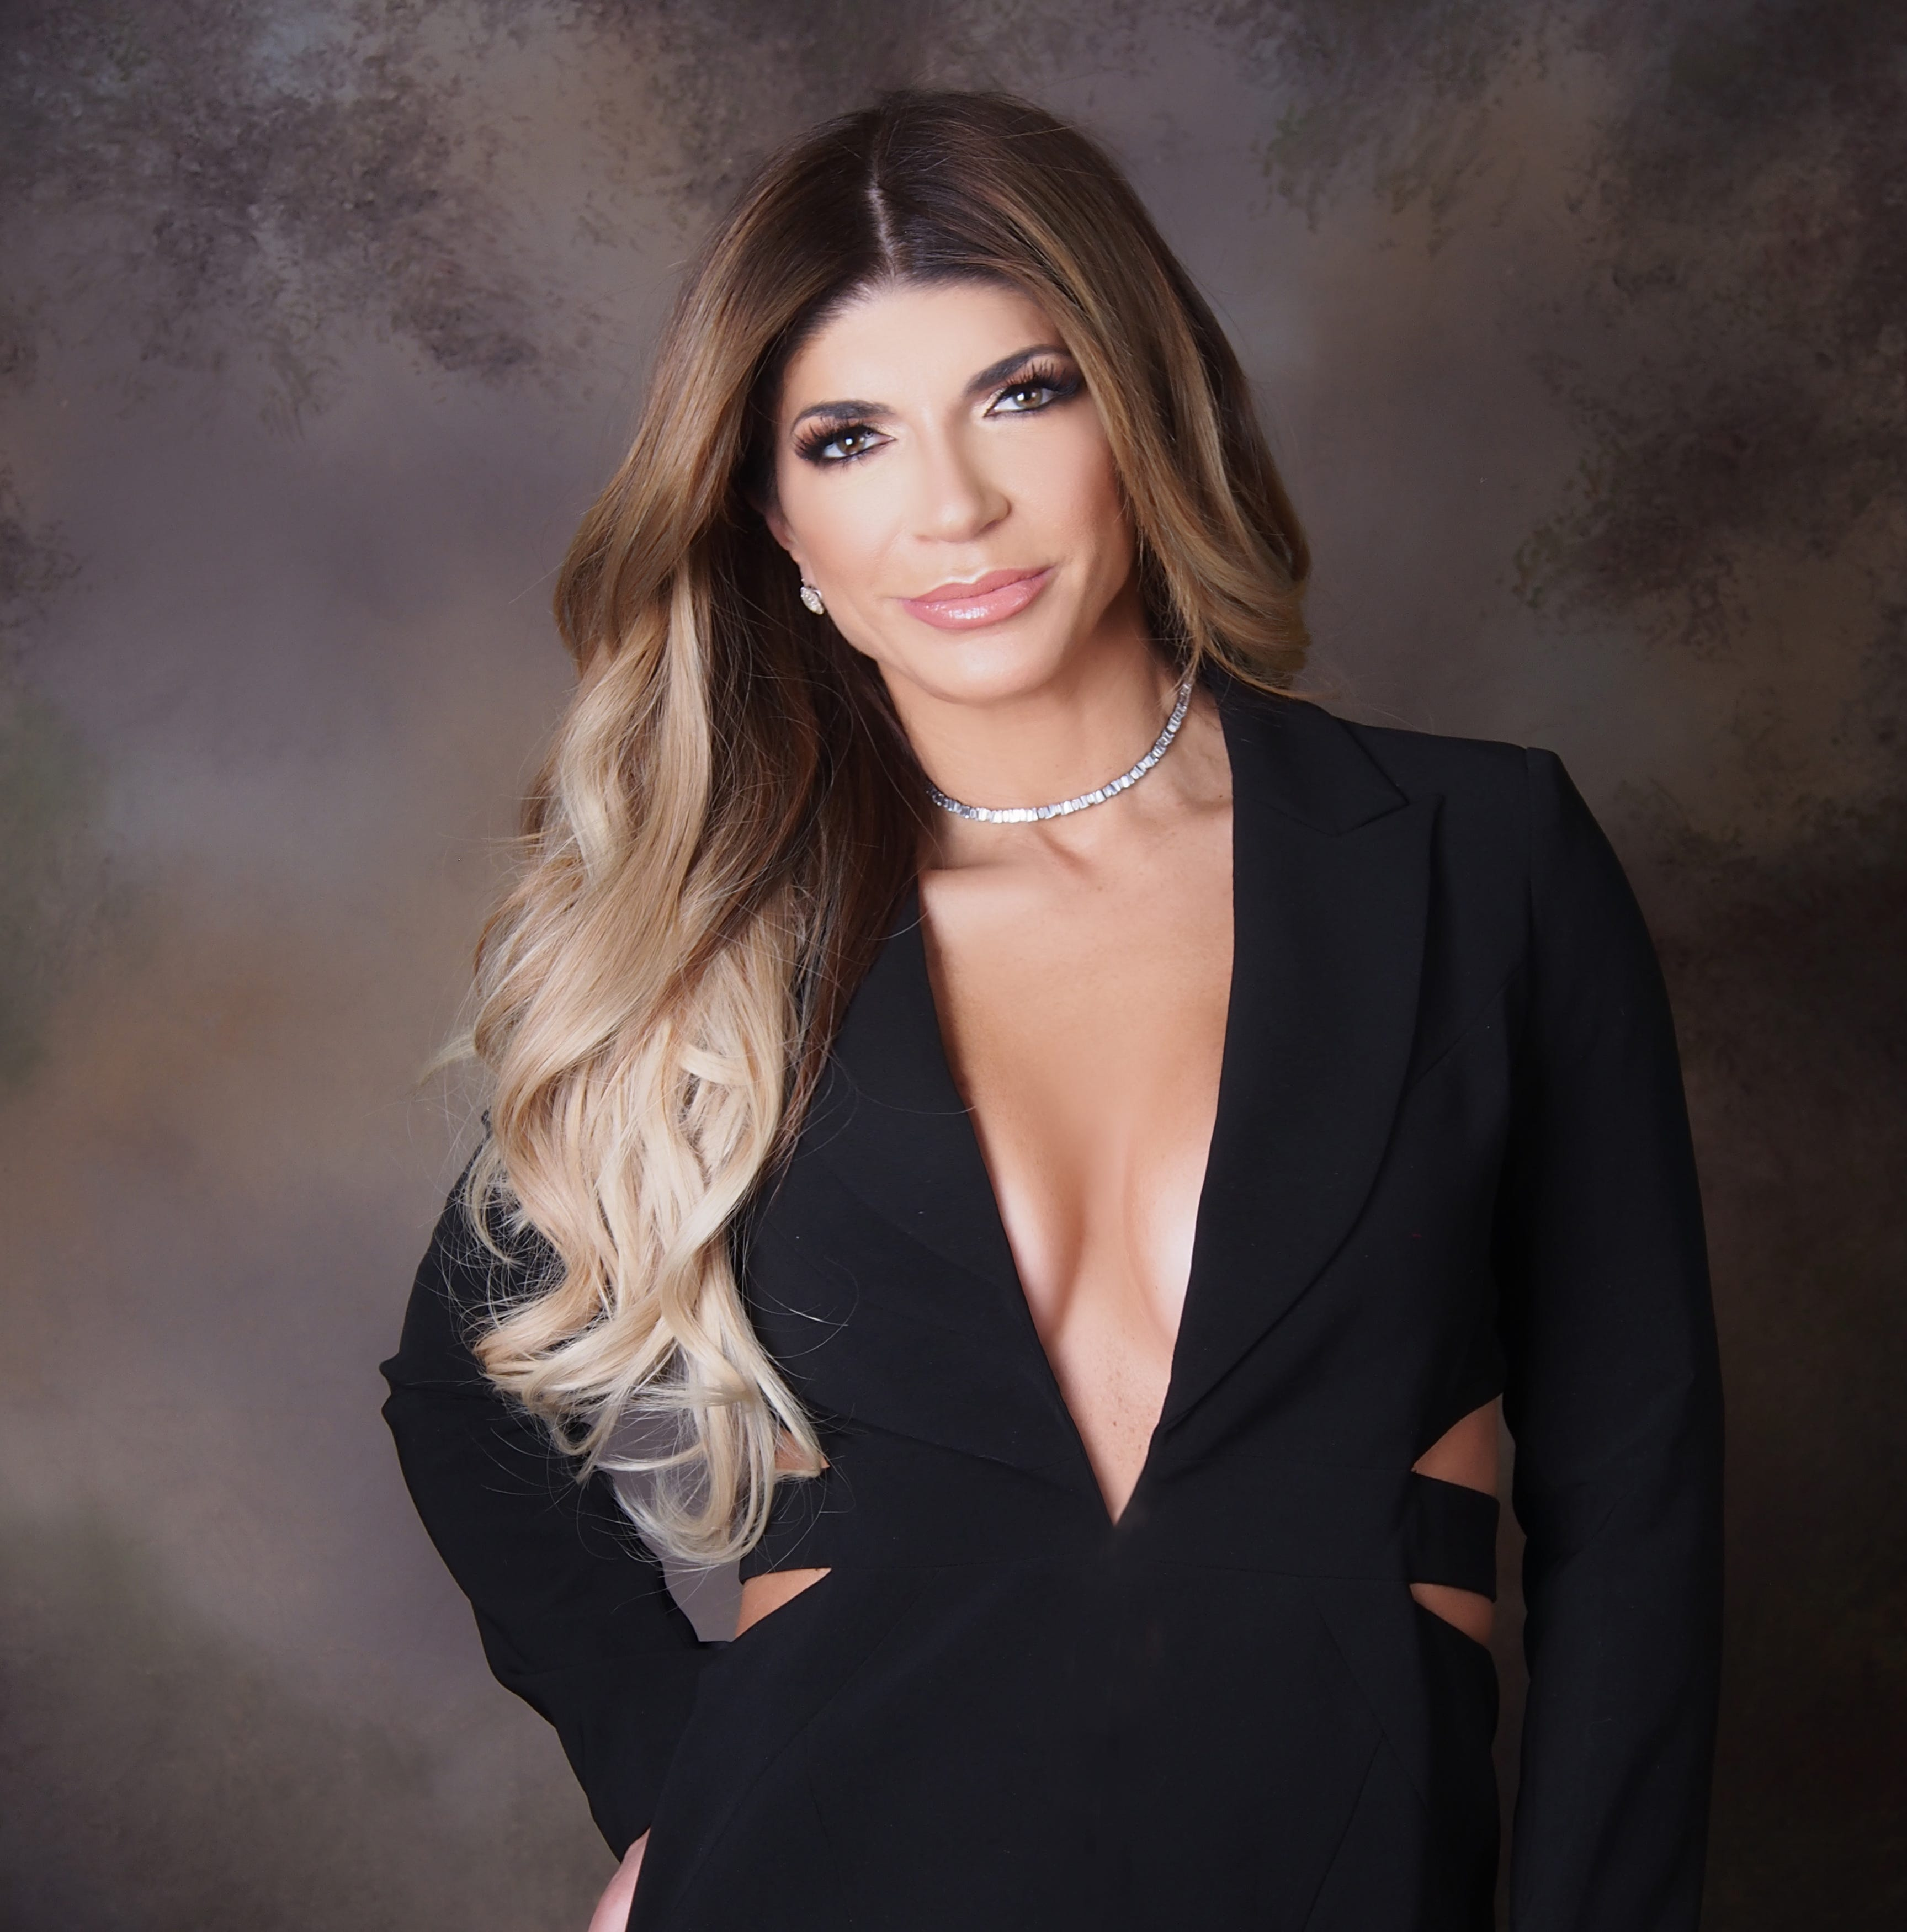 RHONJ: Teresa Giudice and other housewives give back